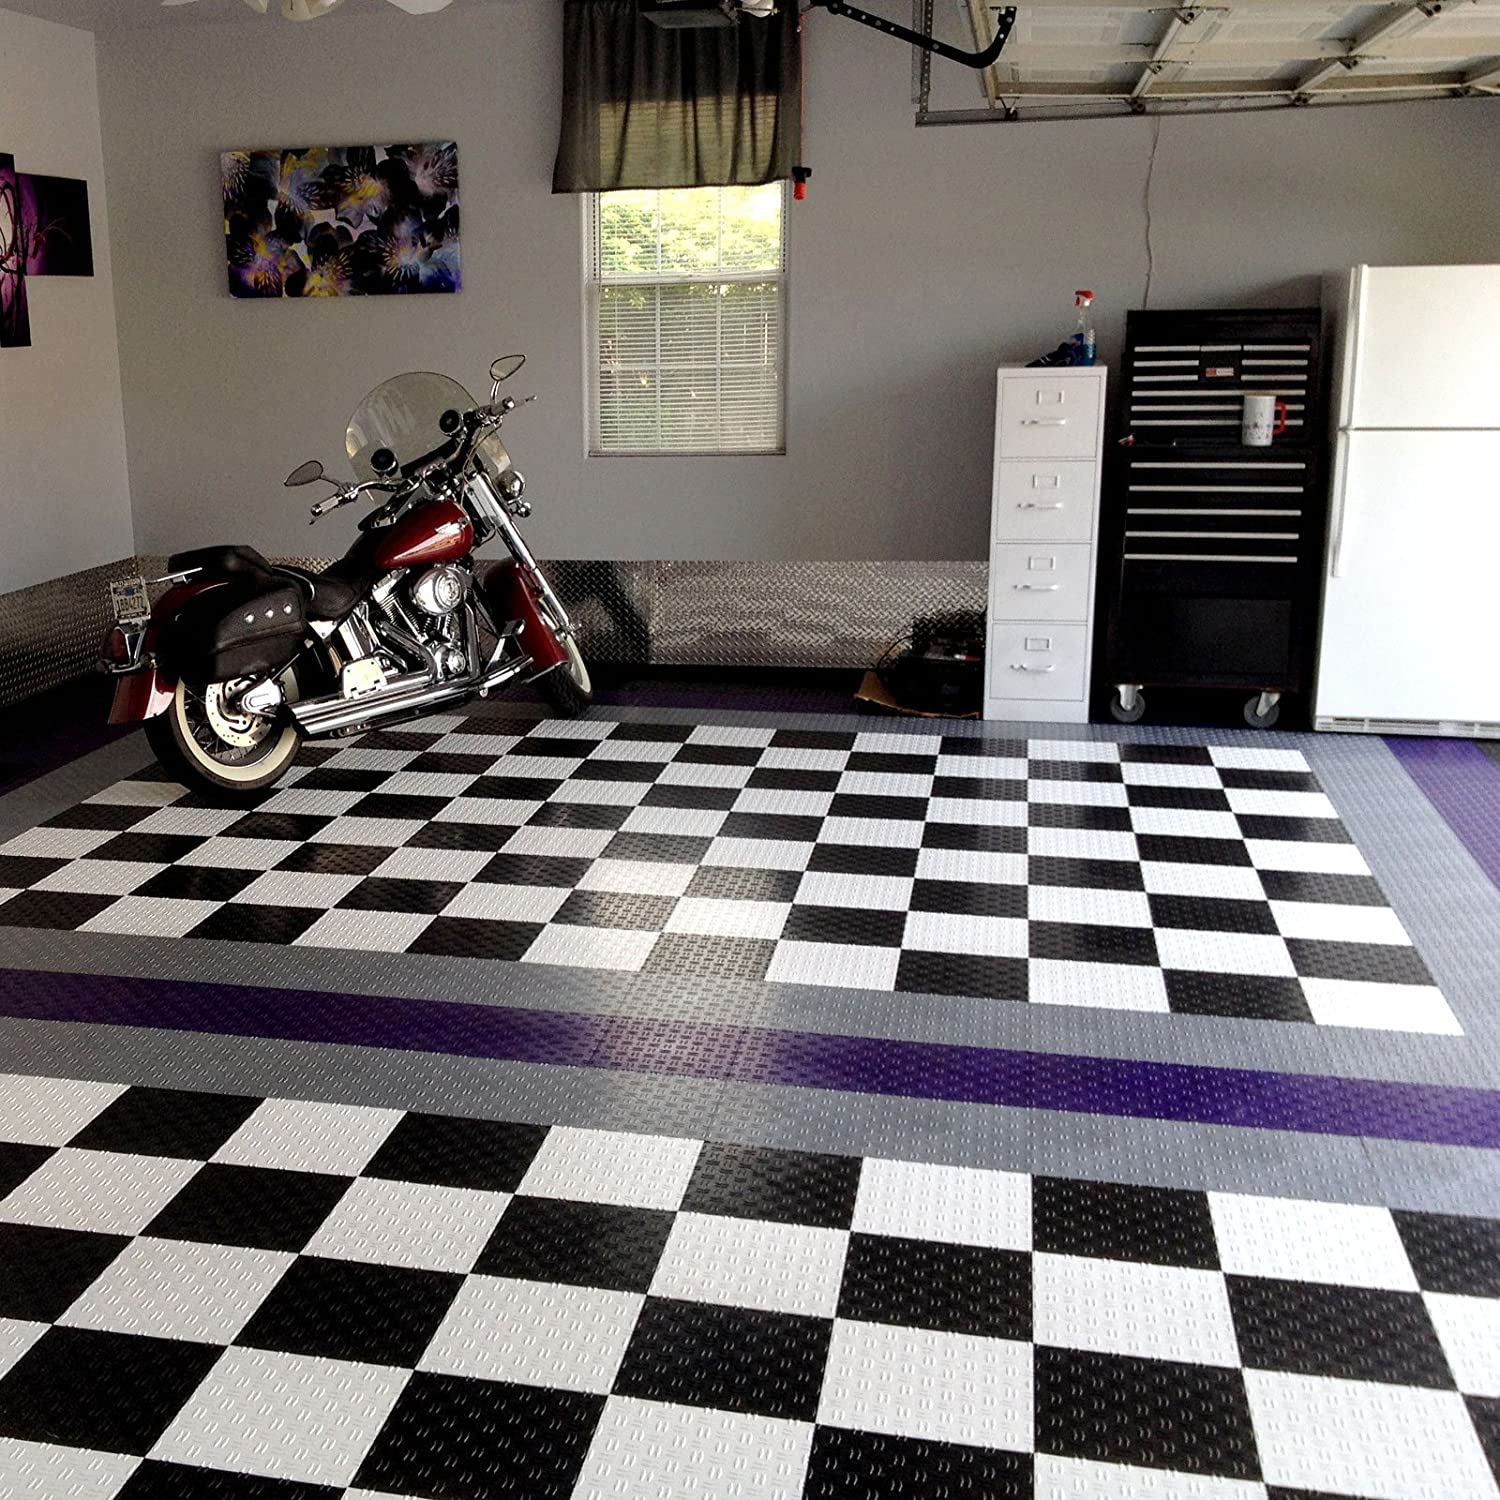 Incstores 12in x12in grid loc garage flooring tiles 12 tile pack incstores 12in x12in grid loc garage flooring tiles 12 tile pack interlocking modular floor system with built in drainage and snap together installation dailygadgetfo Image collections